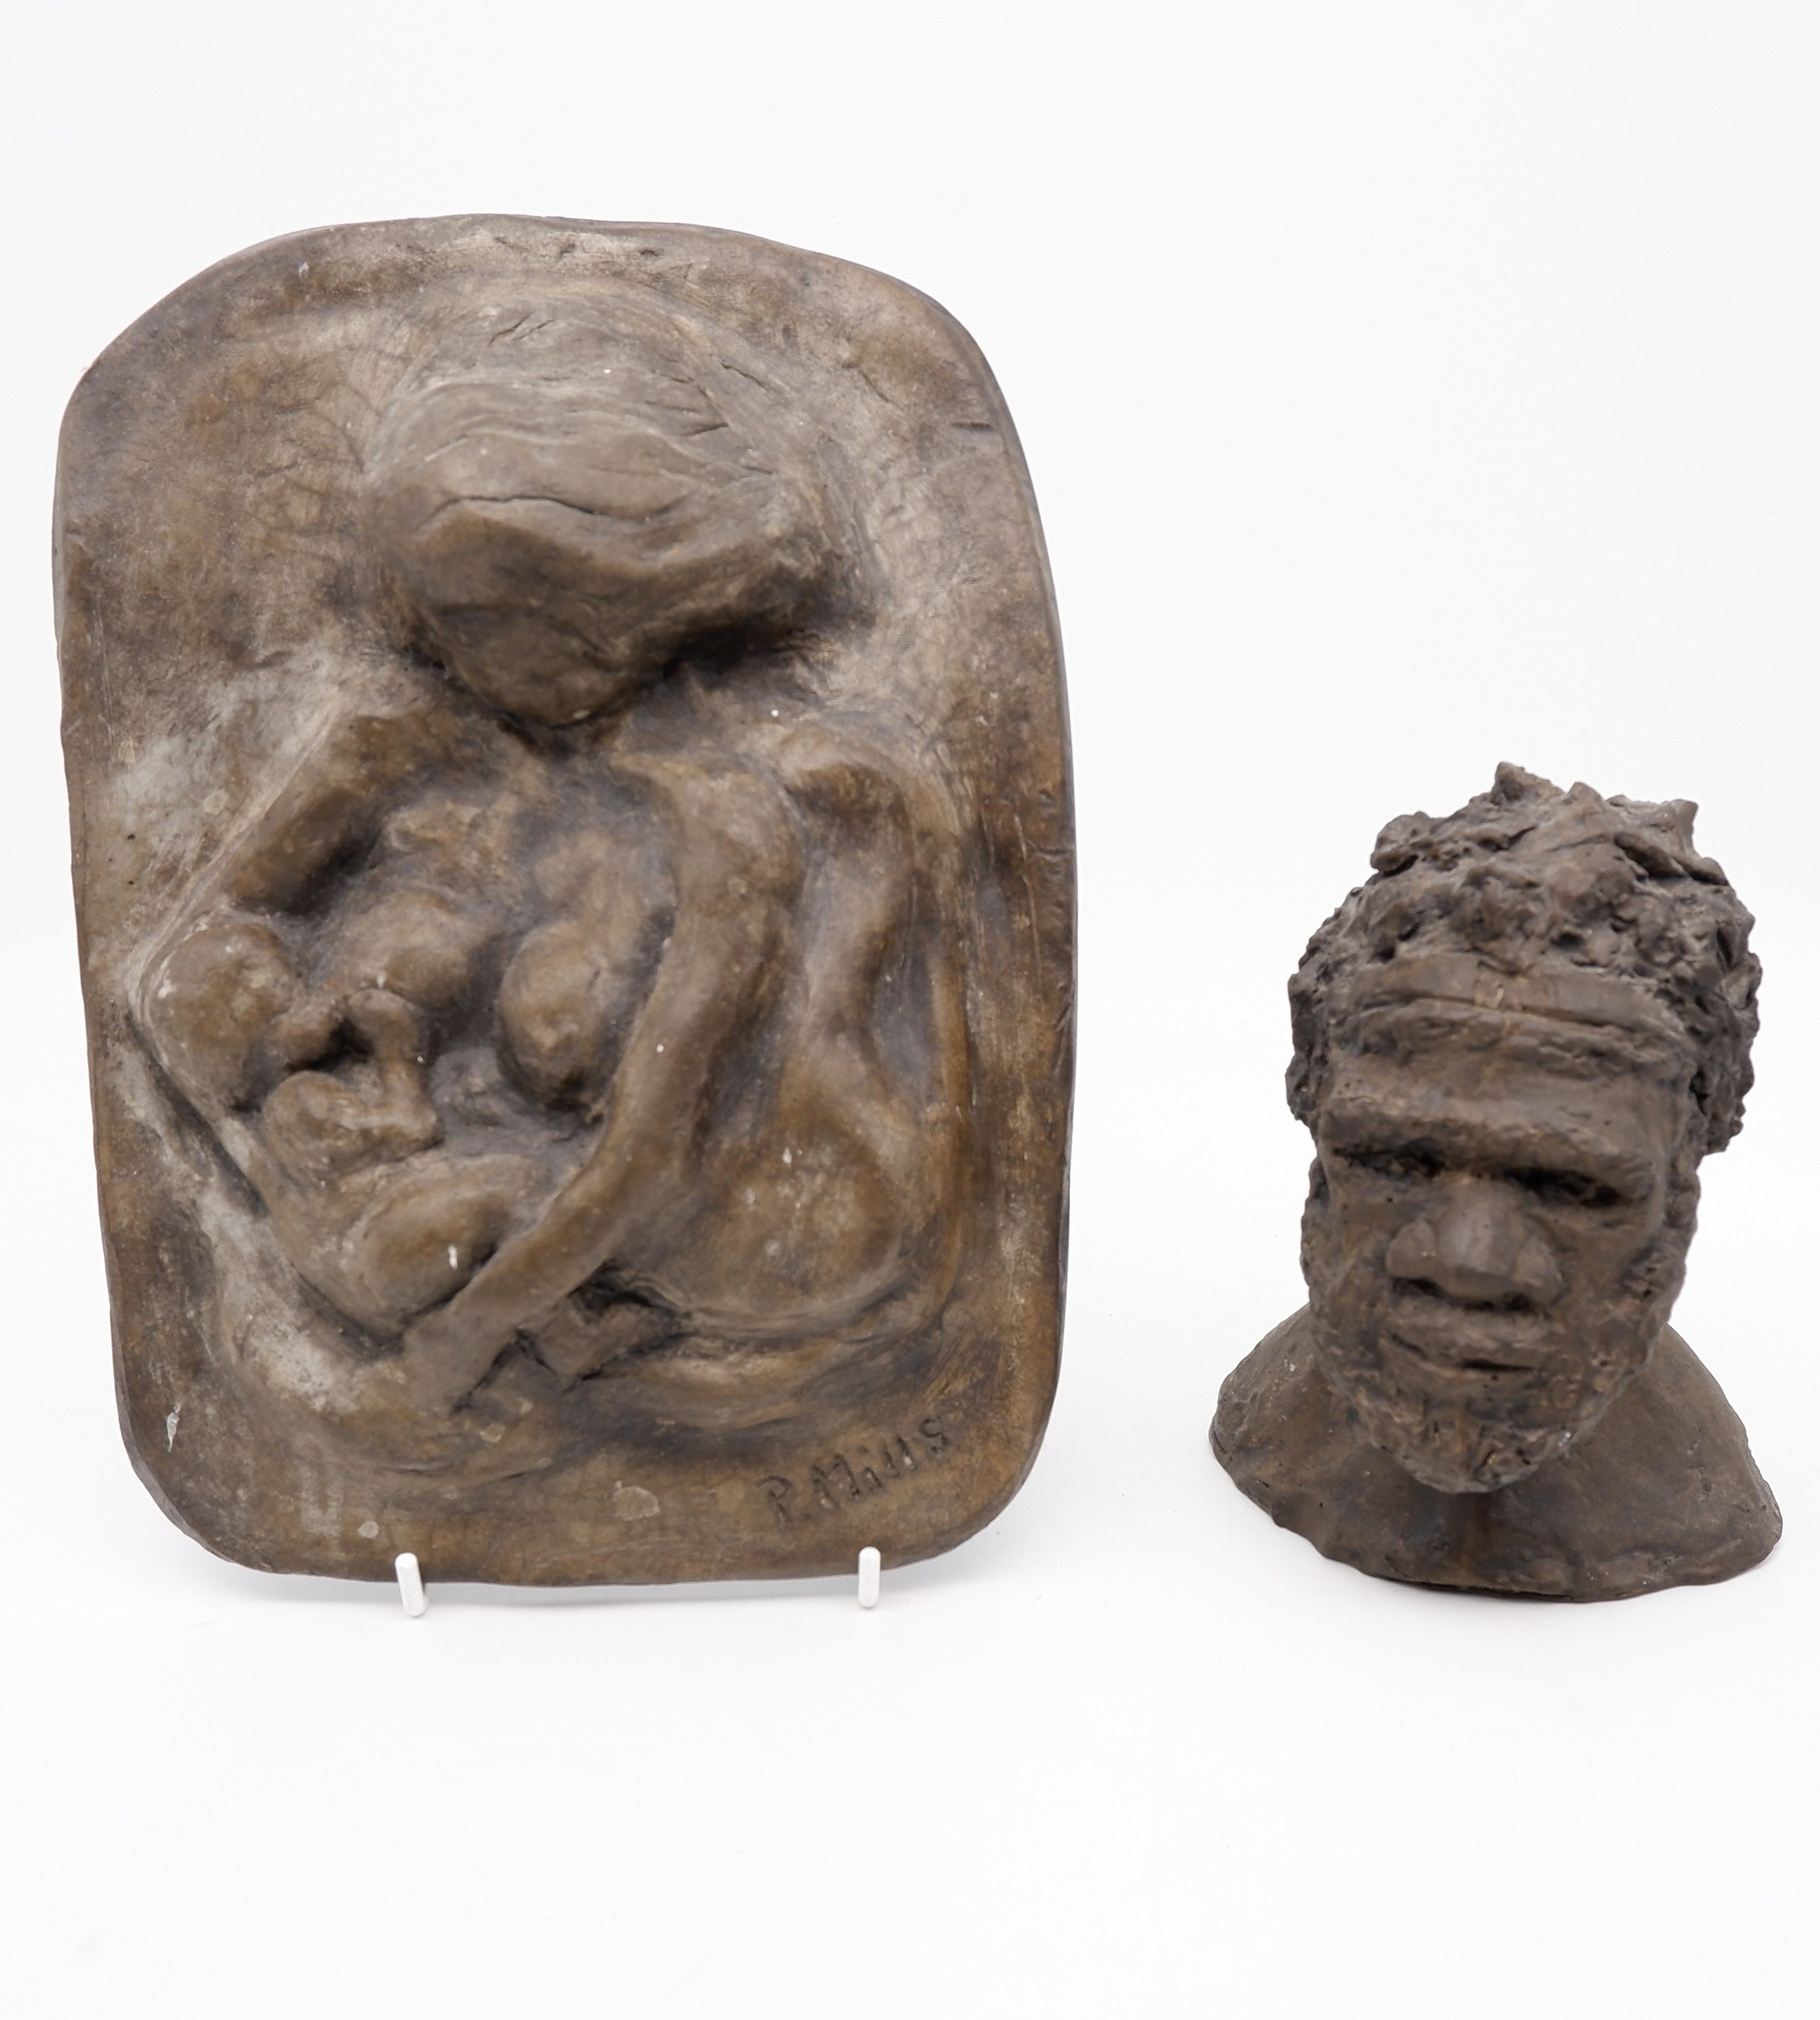 'Two Ceramic Sculptures by P. Mills'